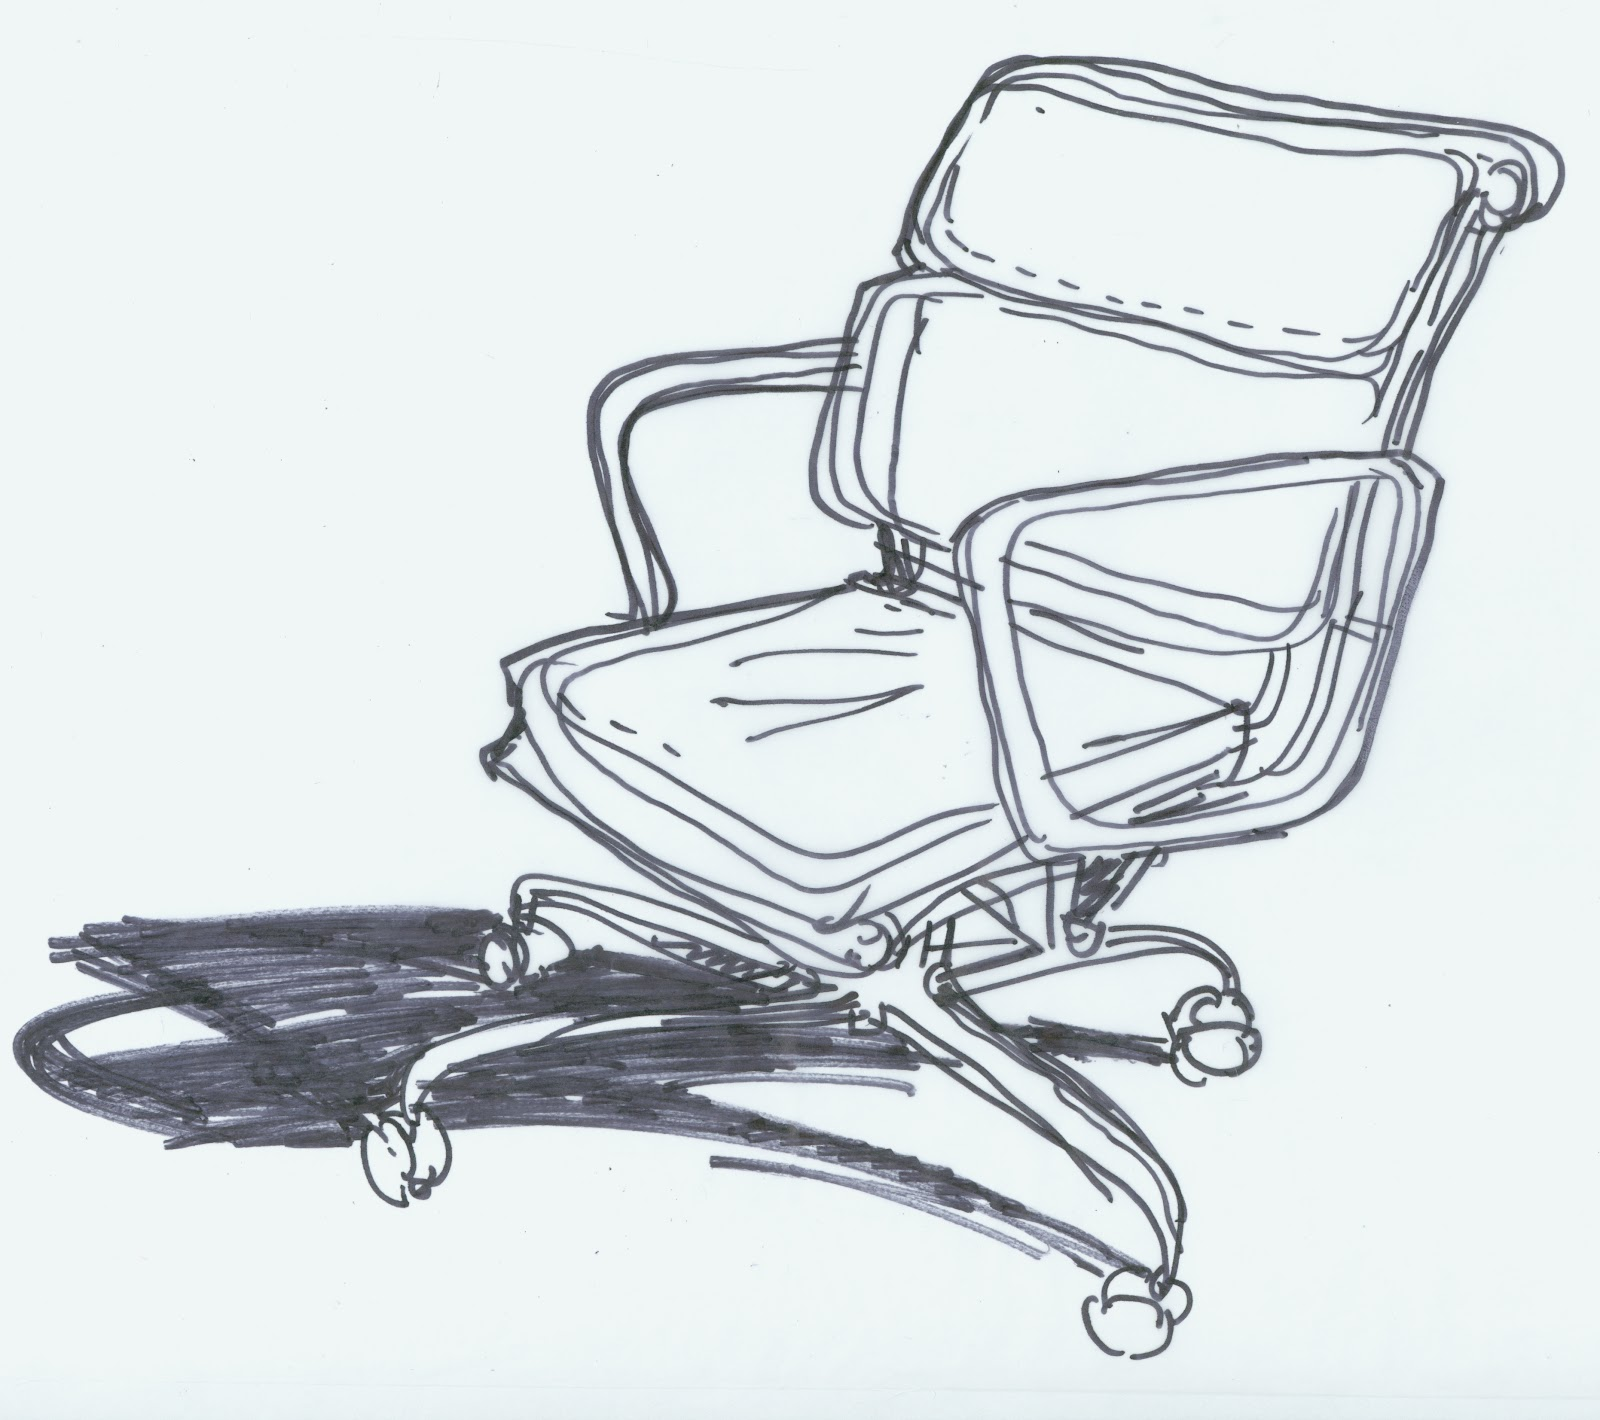 Eames Chair Drawing Day 183 Drawing Eames Chair Robert Plant Drawing A Day